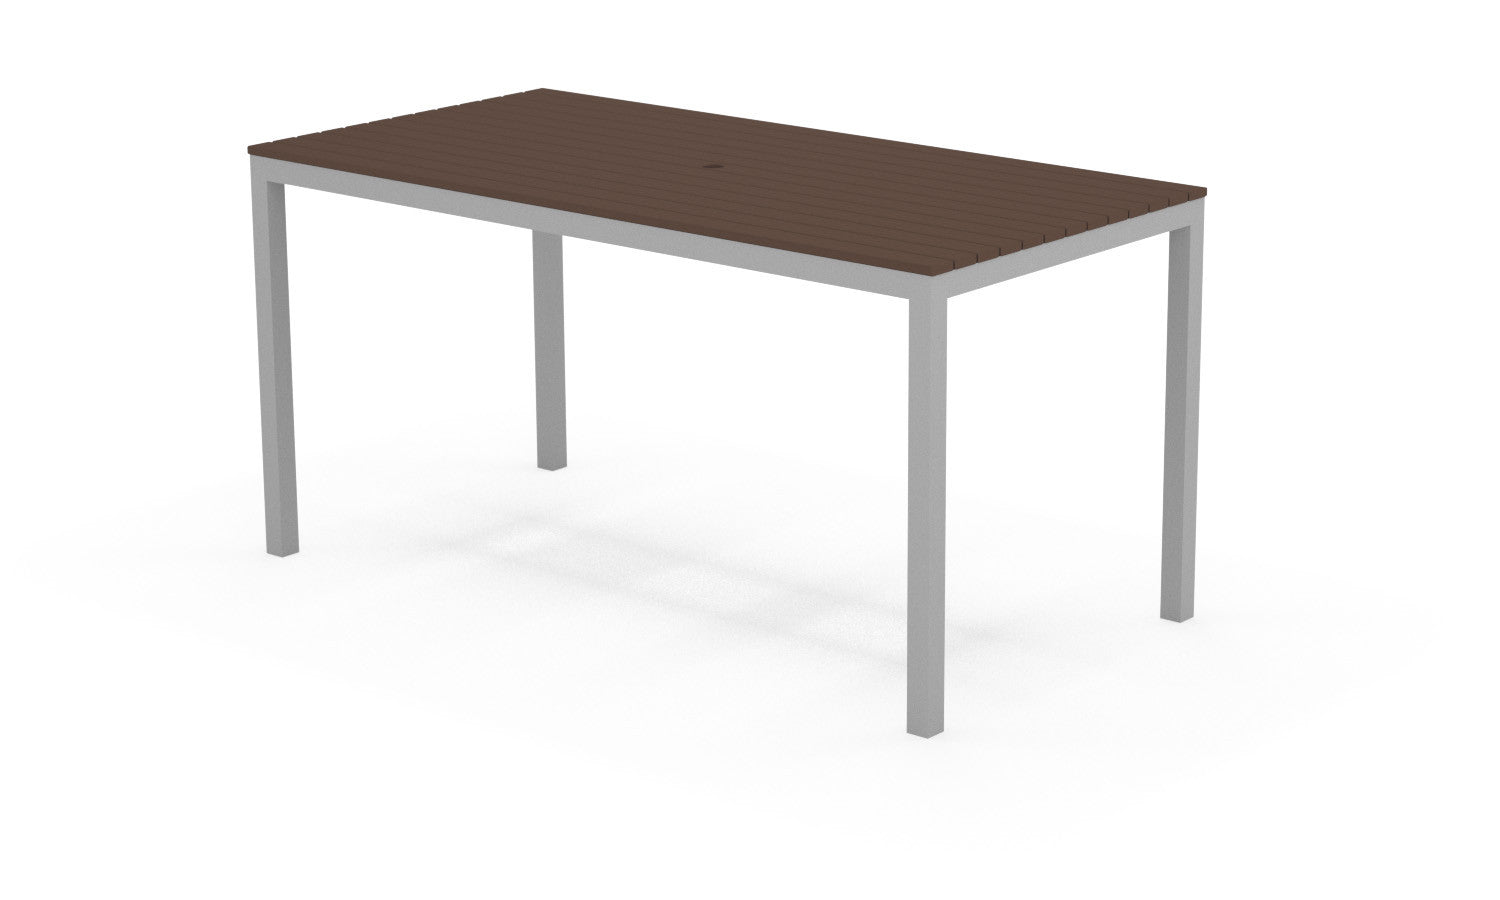 Table Height 36: Loft Outdoor Modern Counter Height Dining Table 72 X 36